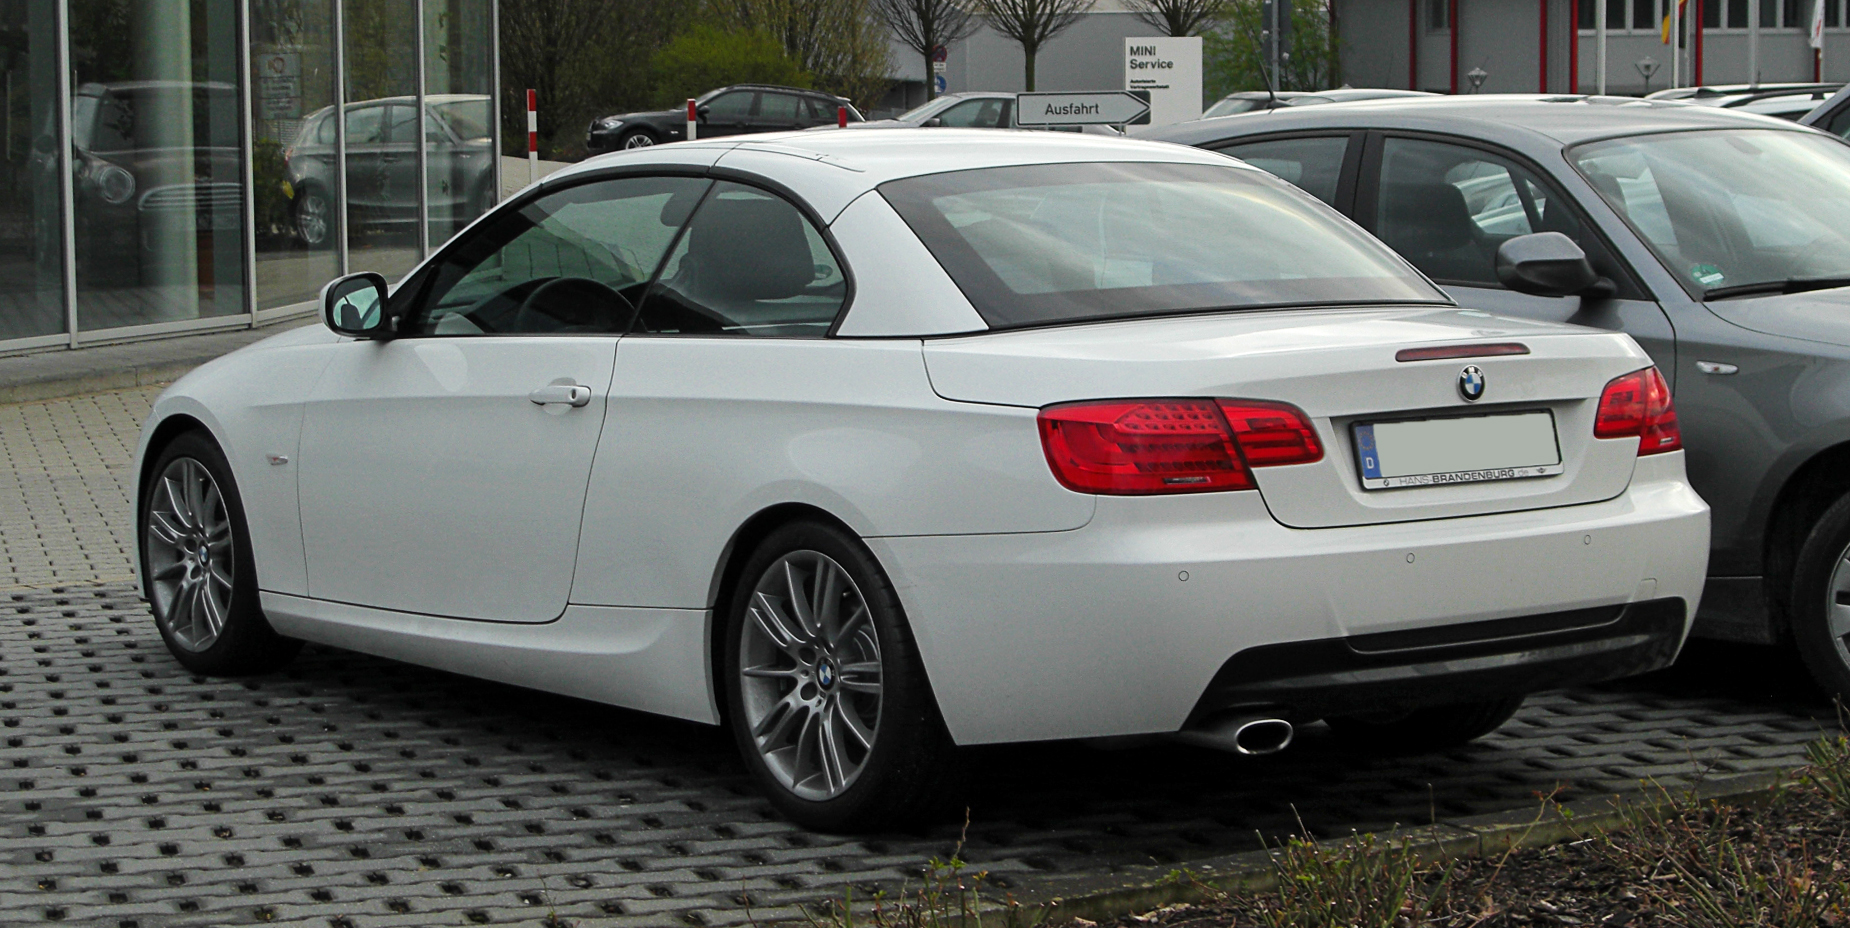 bmw 320i upgrades with File Bmw 320i Cabriolet M Sportpaket  E93  Facelift   E2 80 93 Heckansicht  31 M C3 A4rz 2011  Mettmann on Showthread as well 2016 Bmw 3 Series Facelift Gets The Ac Schnitzer Treatment also Exhaust products additionally BMW M3 in addition 1213642697.